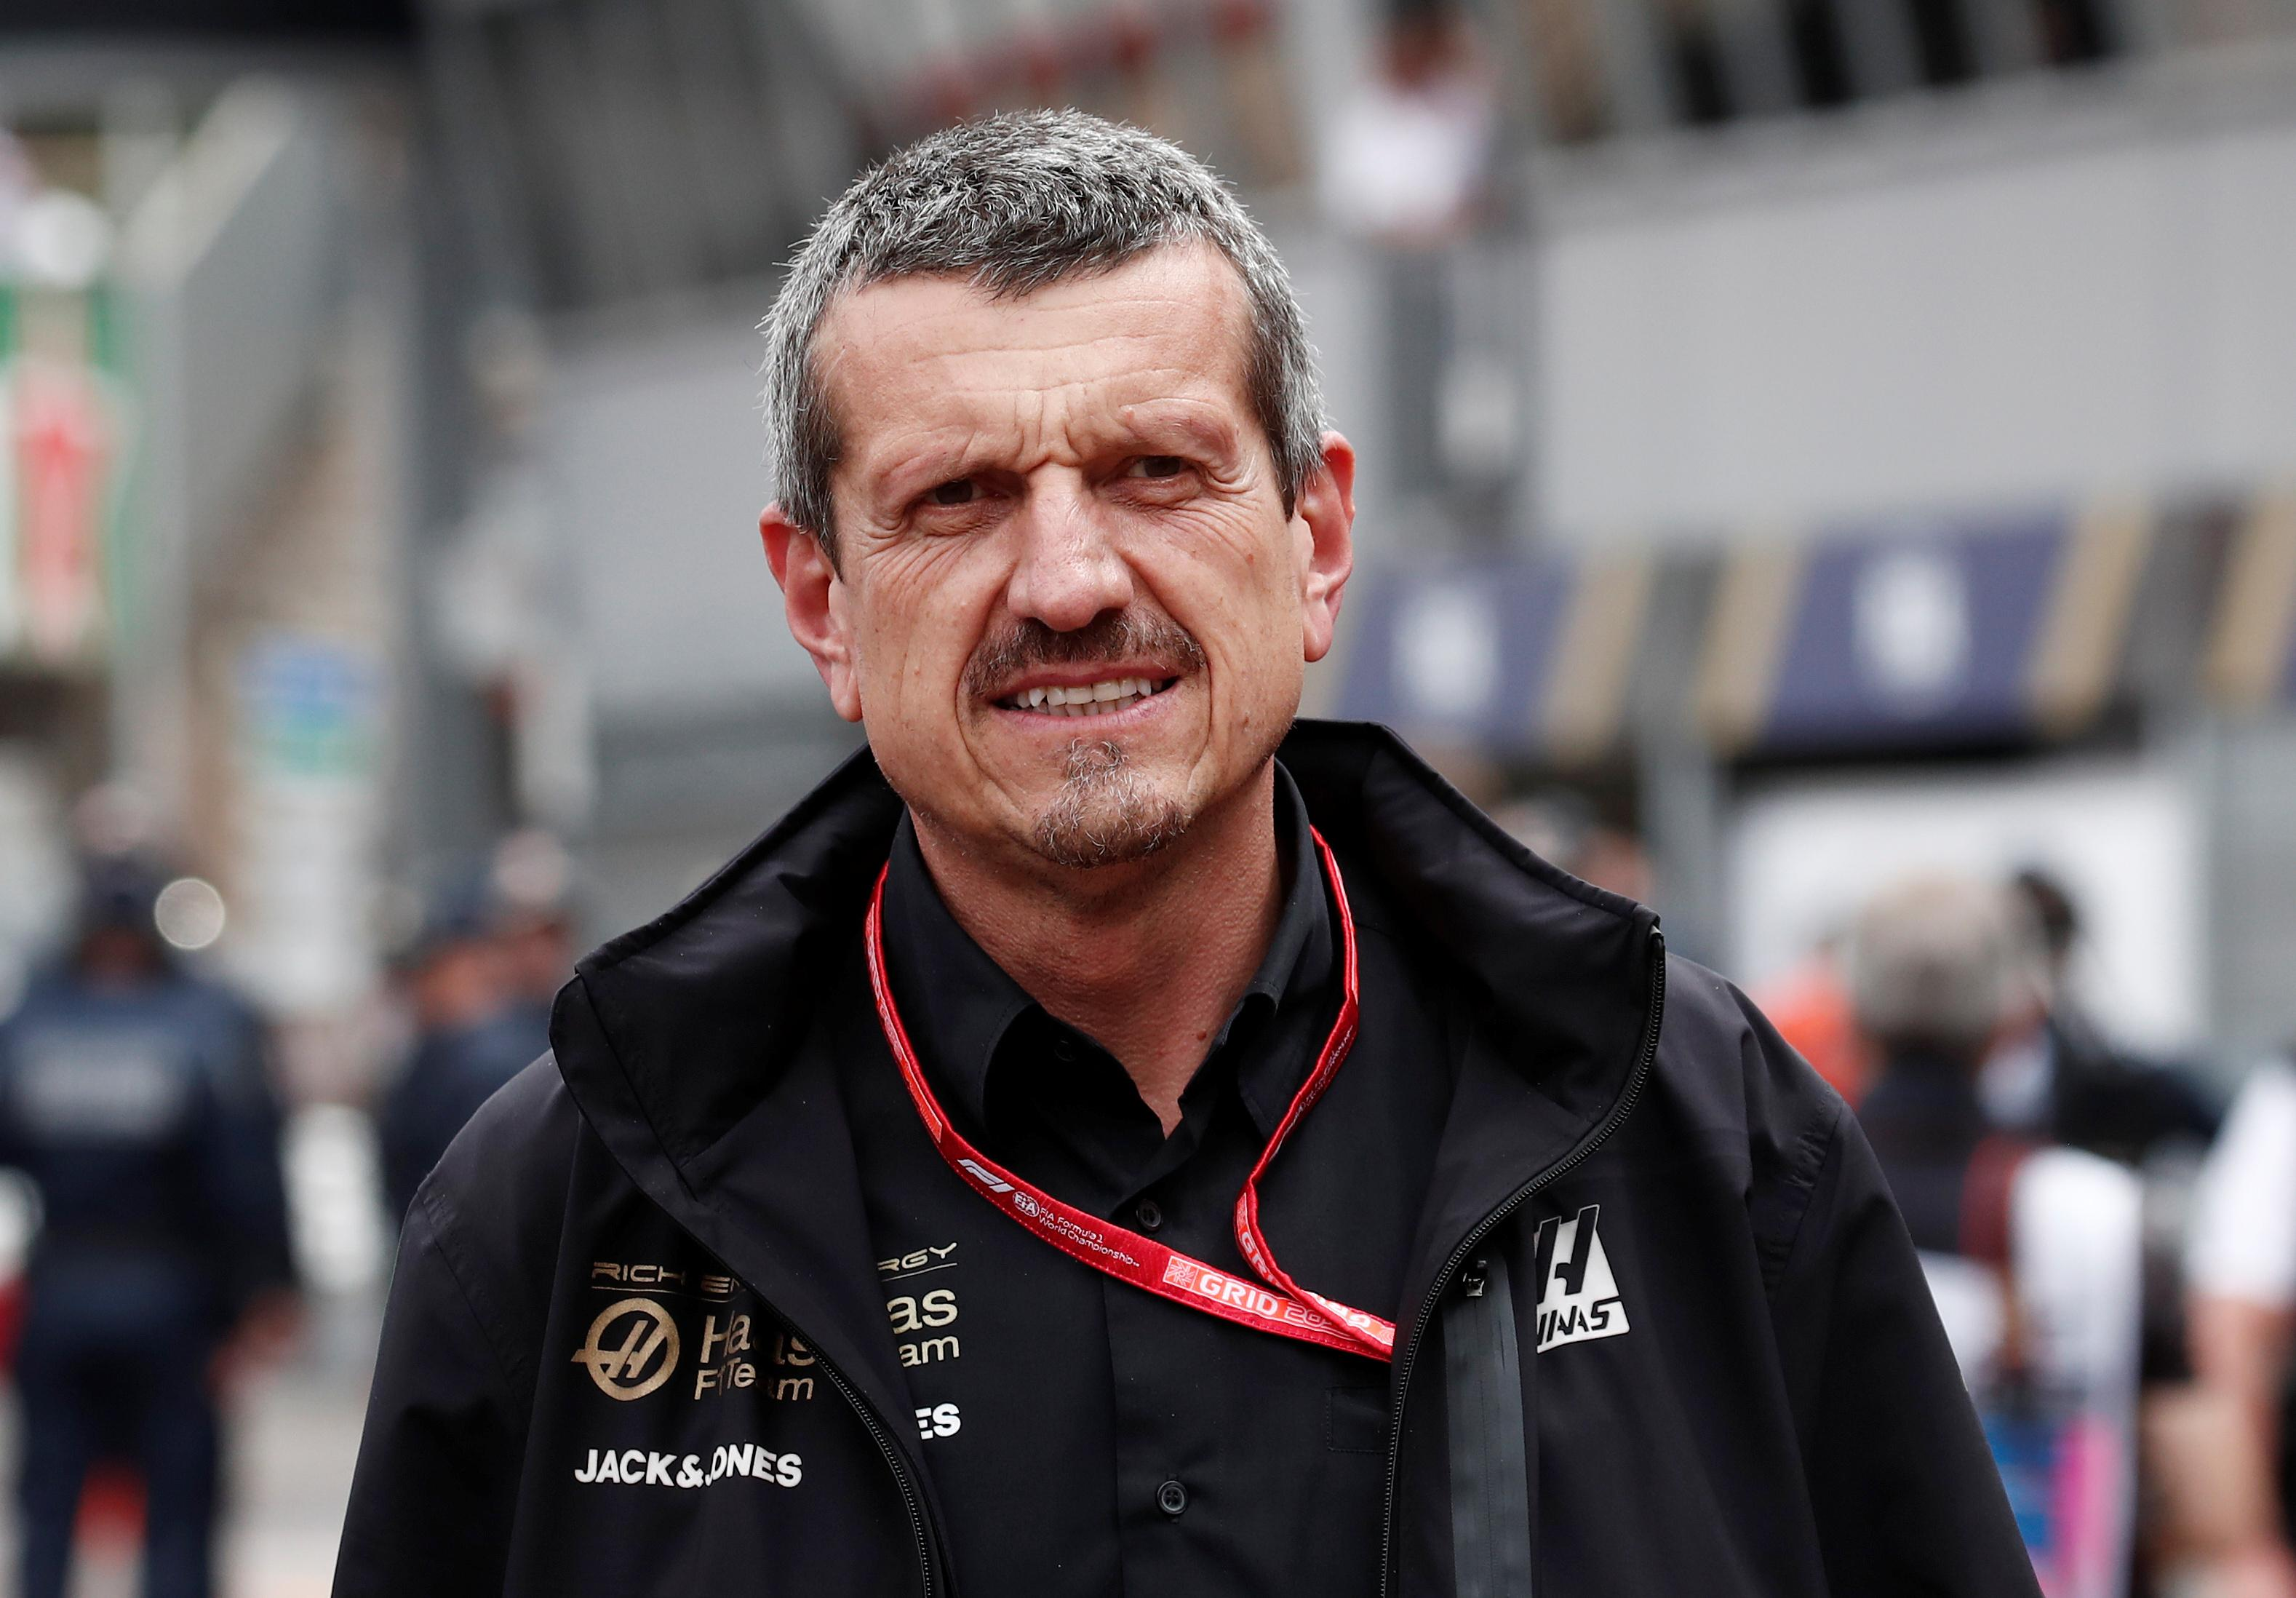 Haas boss Steiner fined for radio outburst in Russia